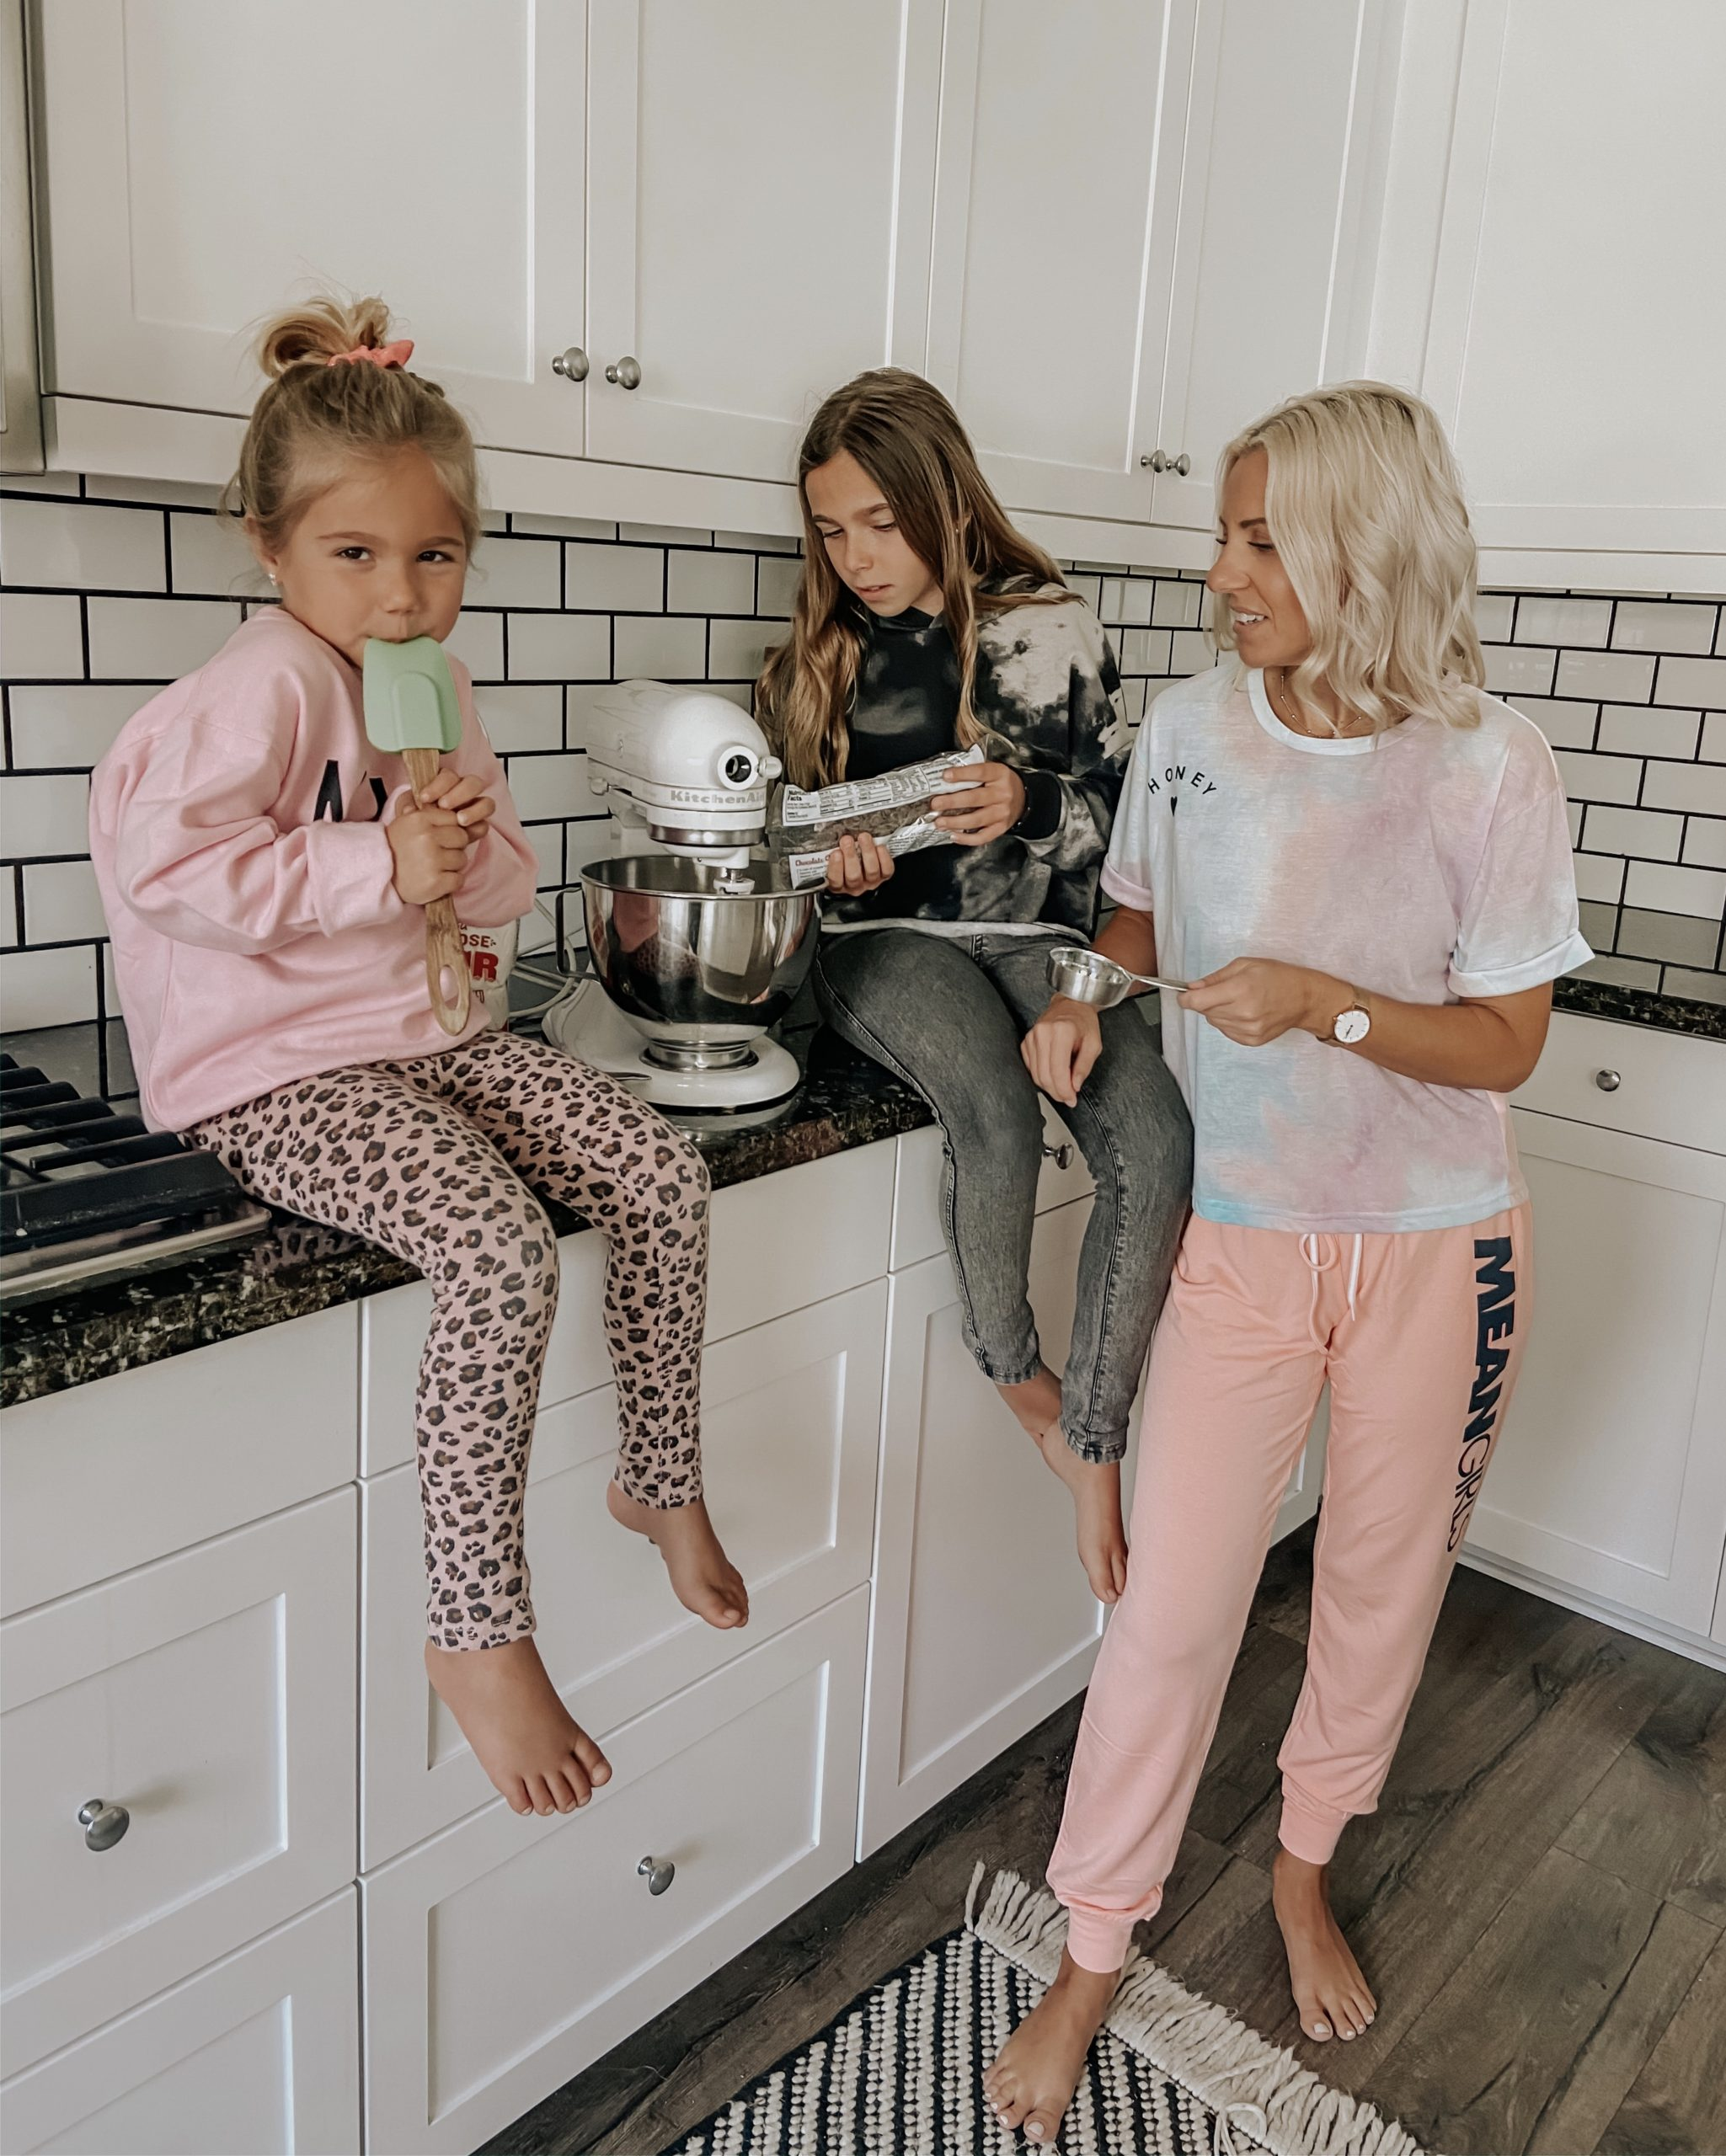 BAKING BANANA BREAD WITH MY GIRLS- Jaclyn De Leon Style: Having fun with my kids in the kitchen and sharing Lulu's famous chocolate chip banana bread recipe